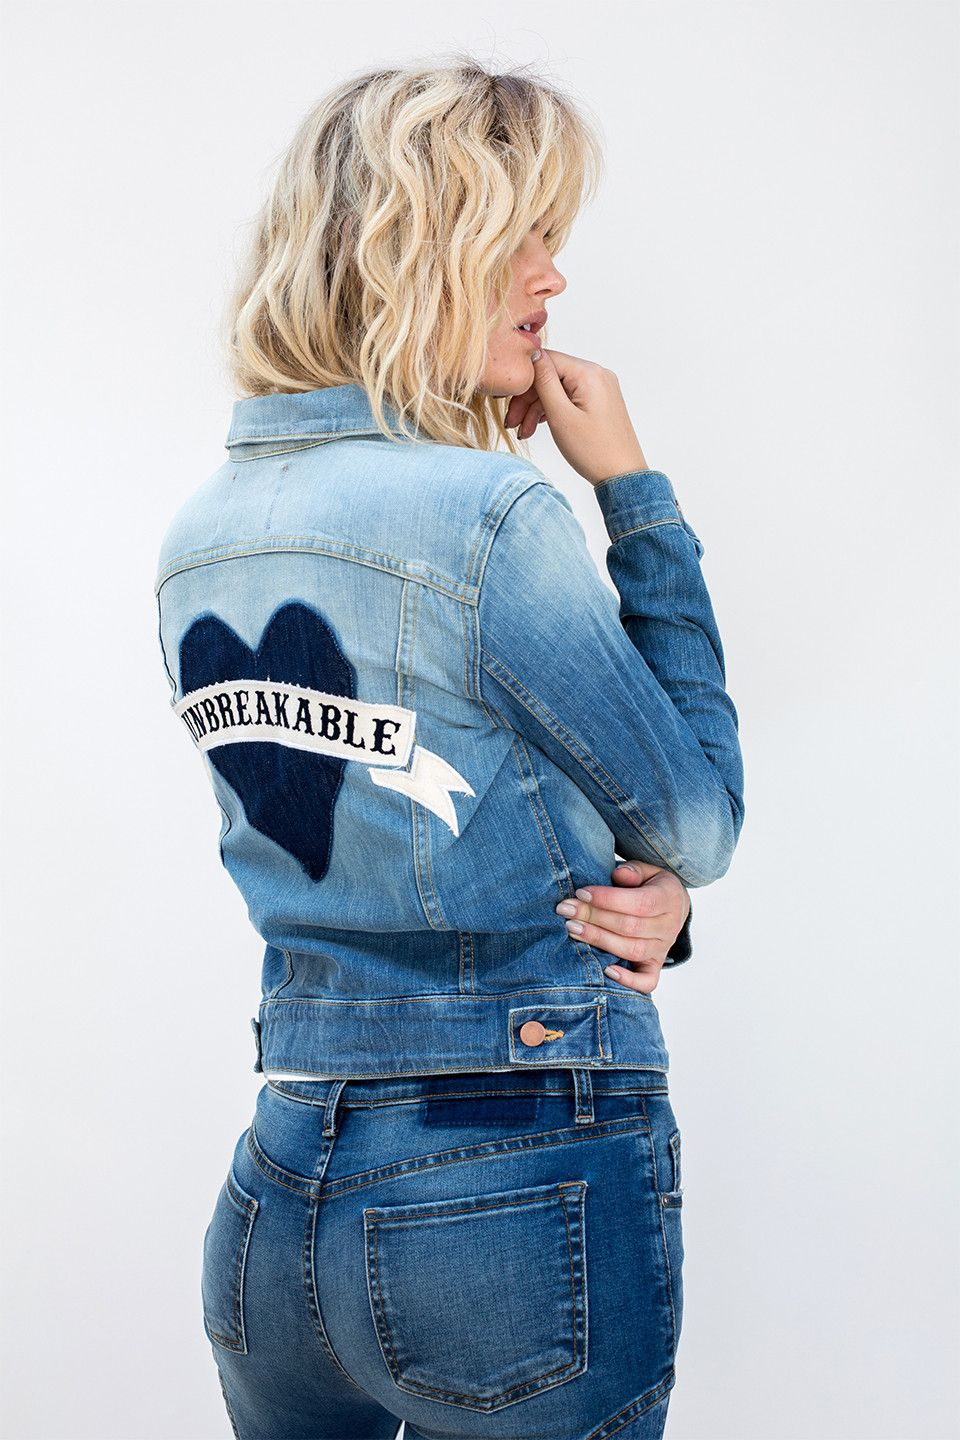 """Be unbreakable with this unique statement denim jacket. Our vintage wash denim jacket featuring a heart shadow patch with embroidered phrase """"Unbreakable"""" on the back was made for you women who want t"""